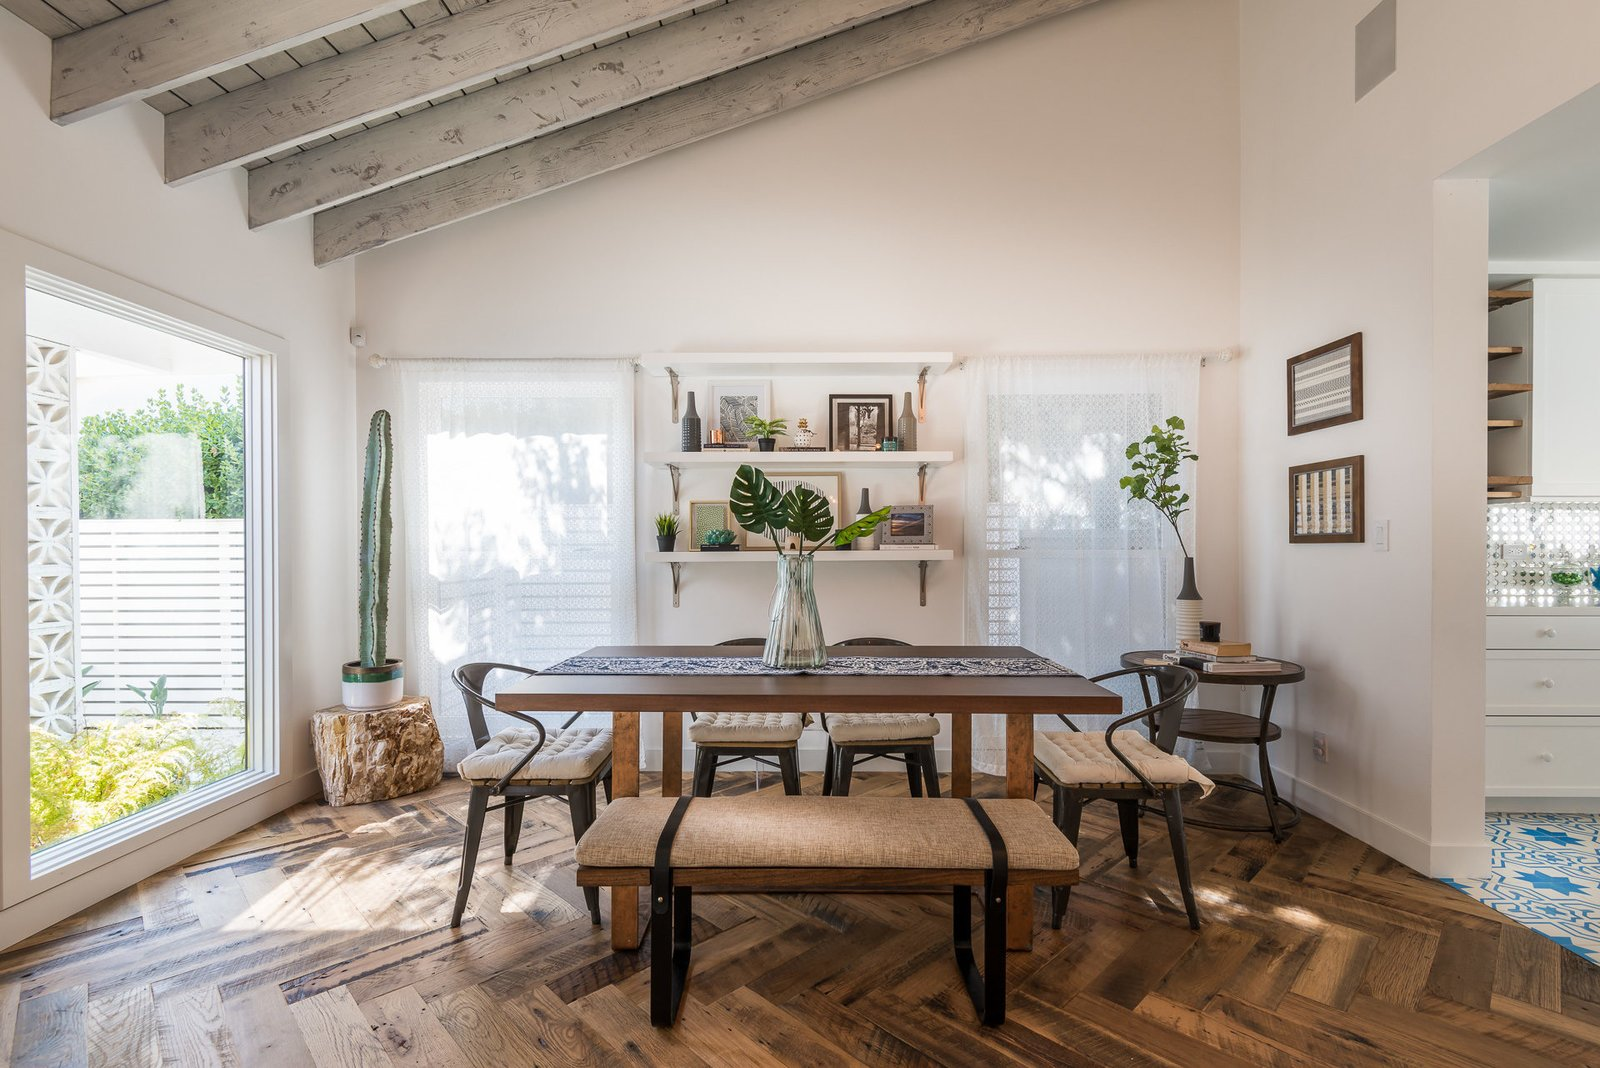 Dining Room, Bench, Table, Medium Hardwood Floor, and Chair  Mid-Century Meets Boho Chic